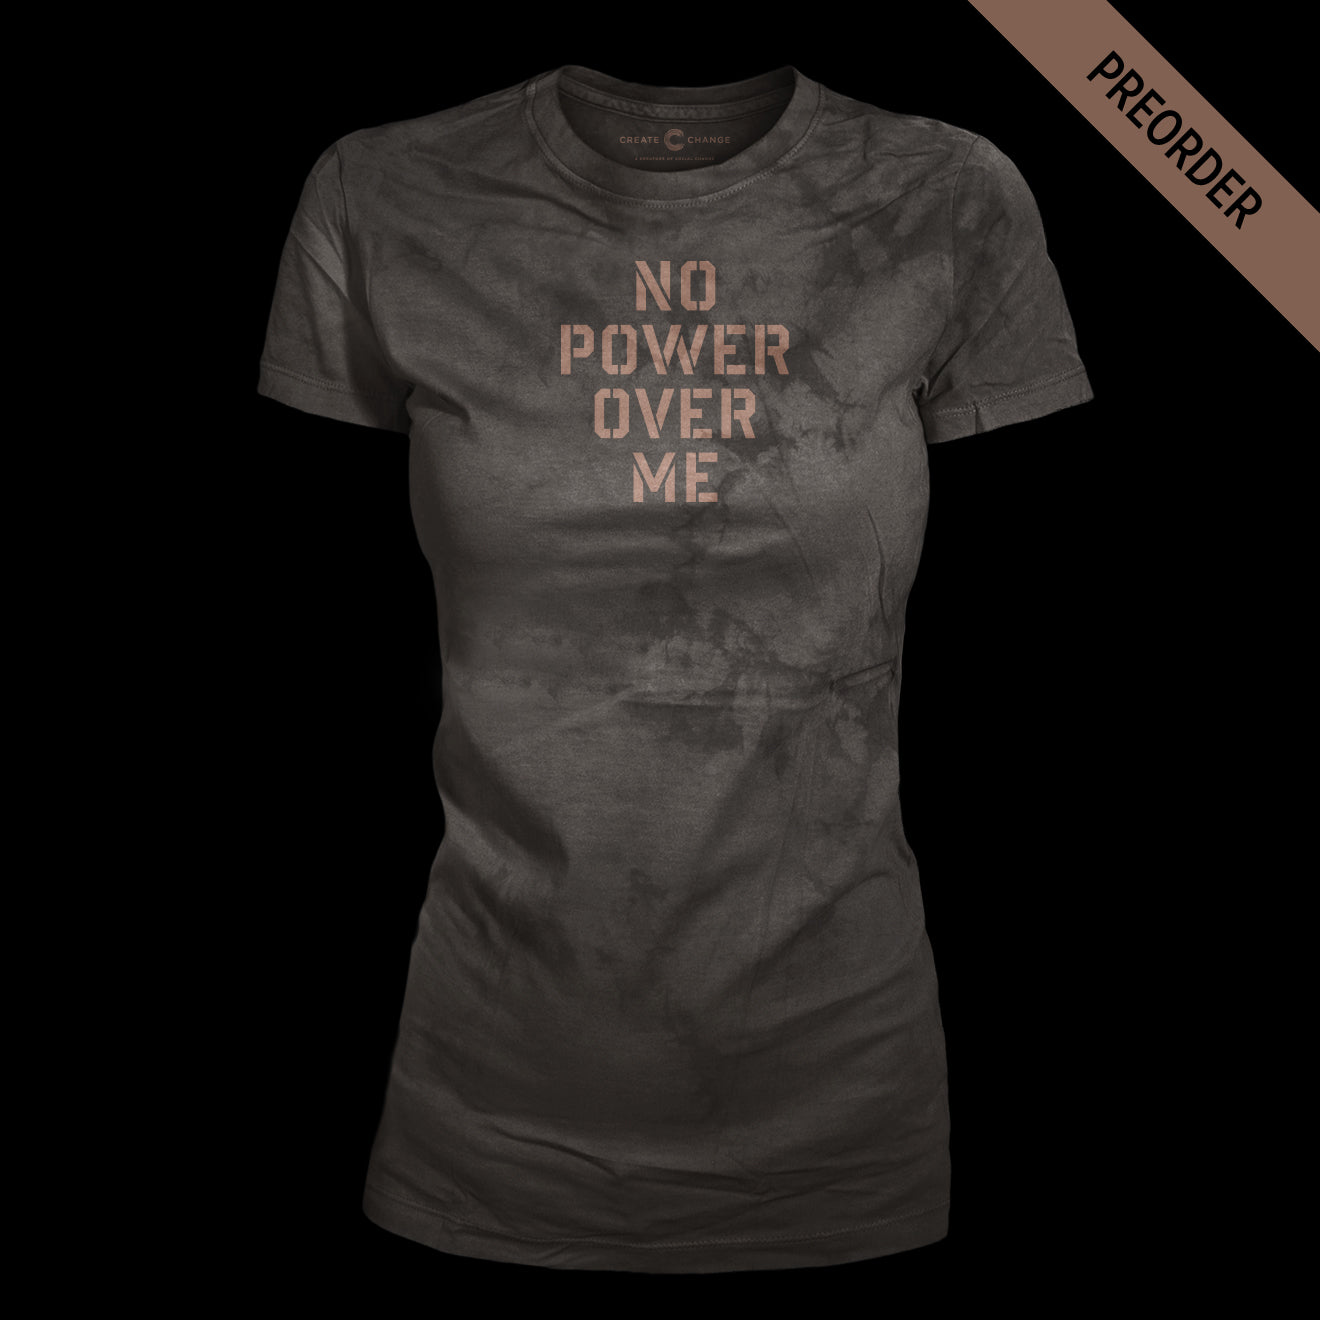 No Power Over Me Distressed Lady's Tee